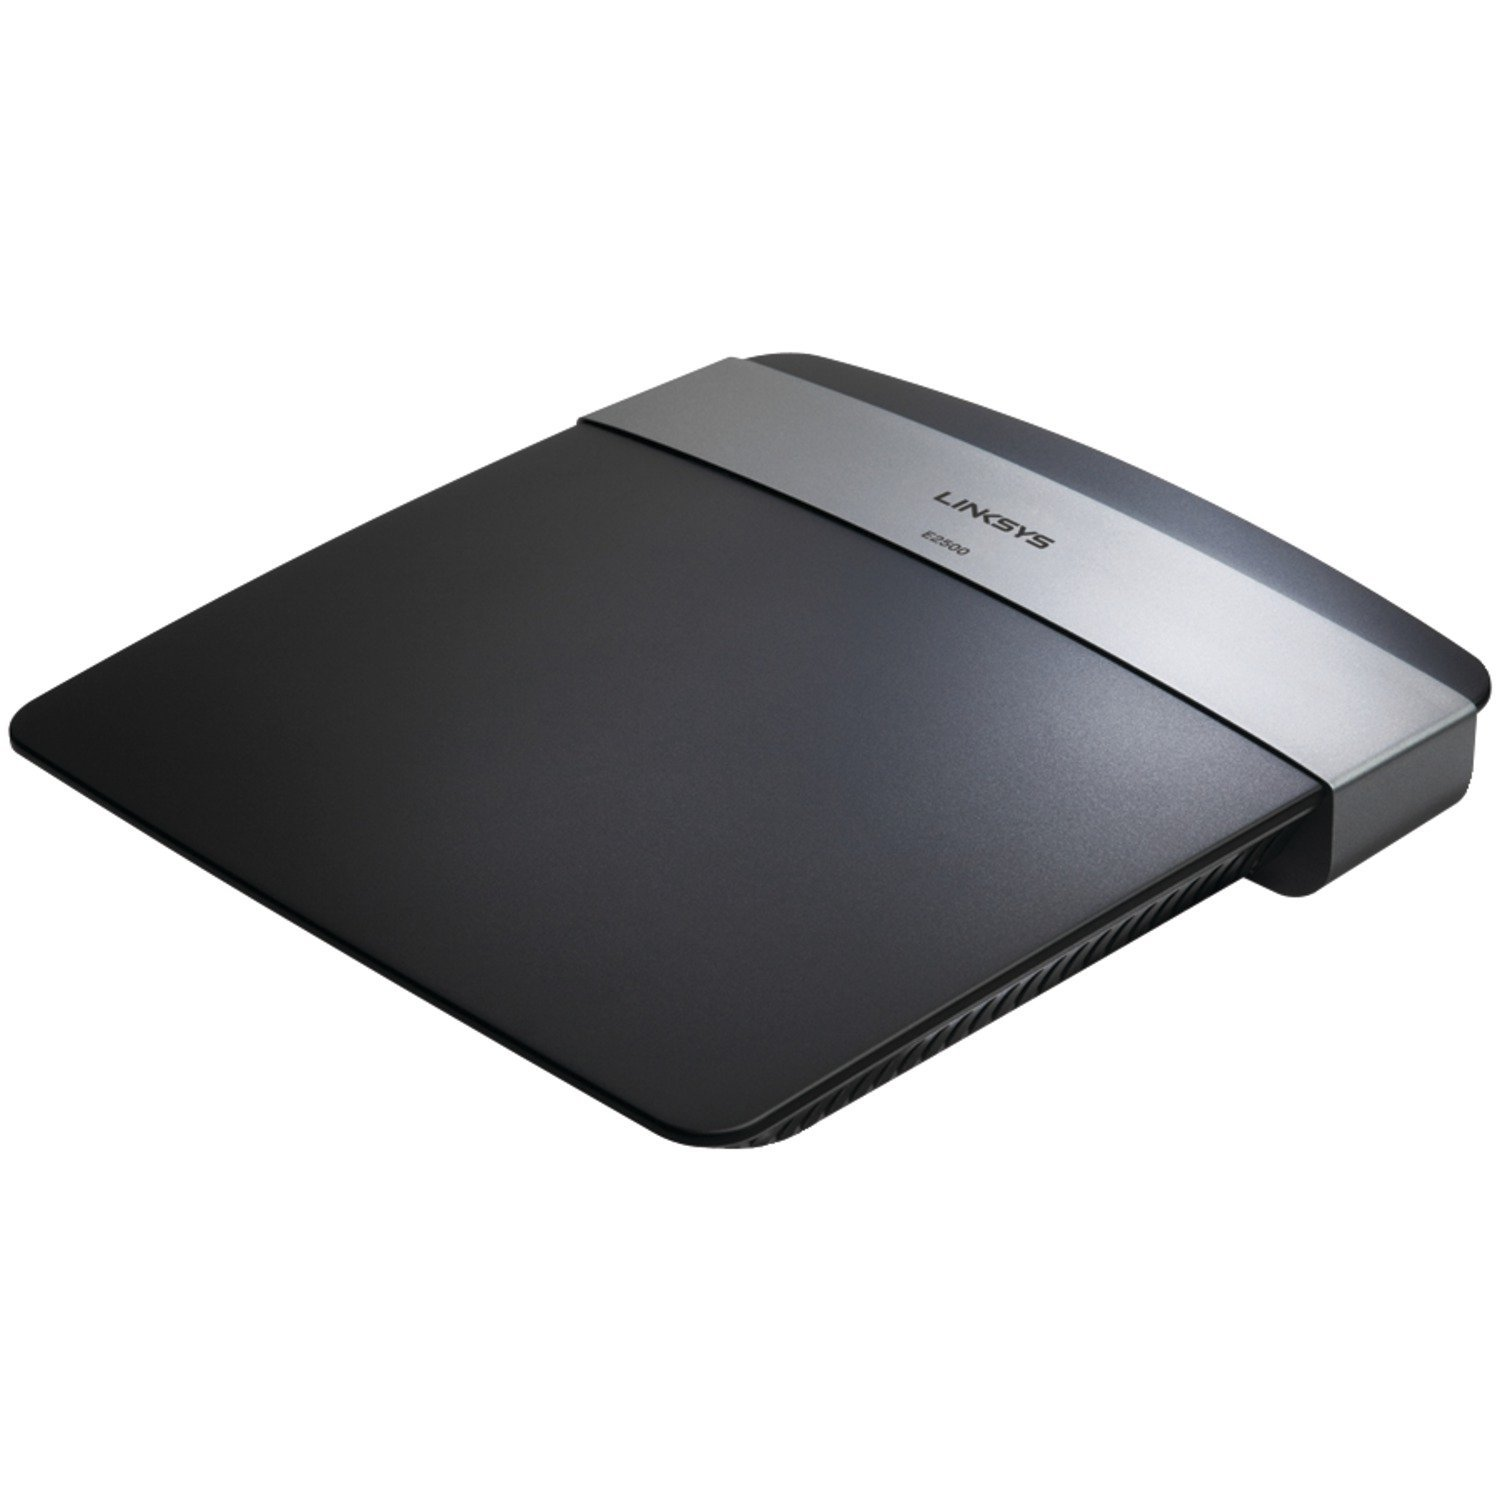 Linksys E2500 Router Image